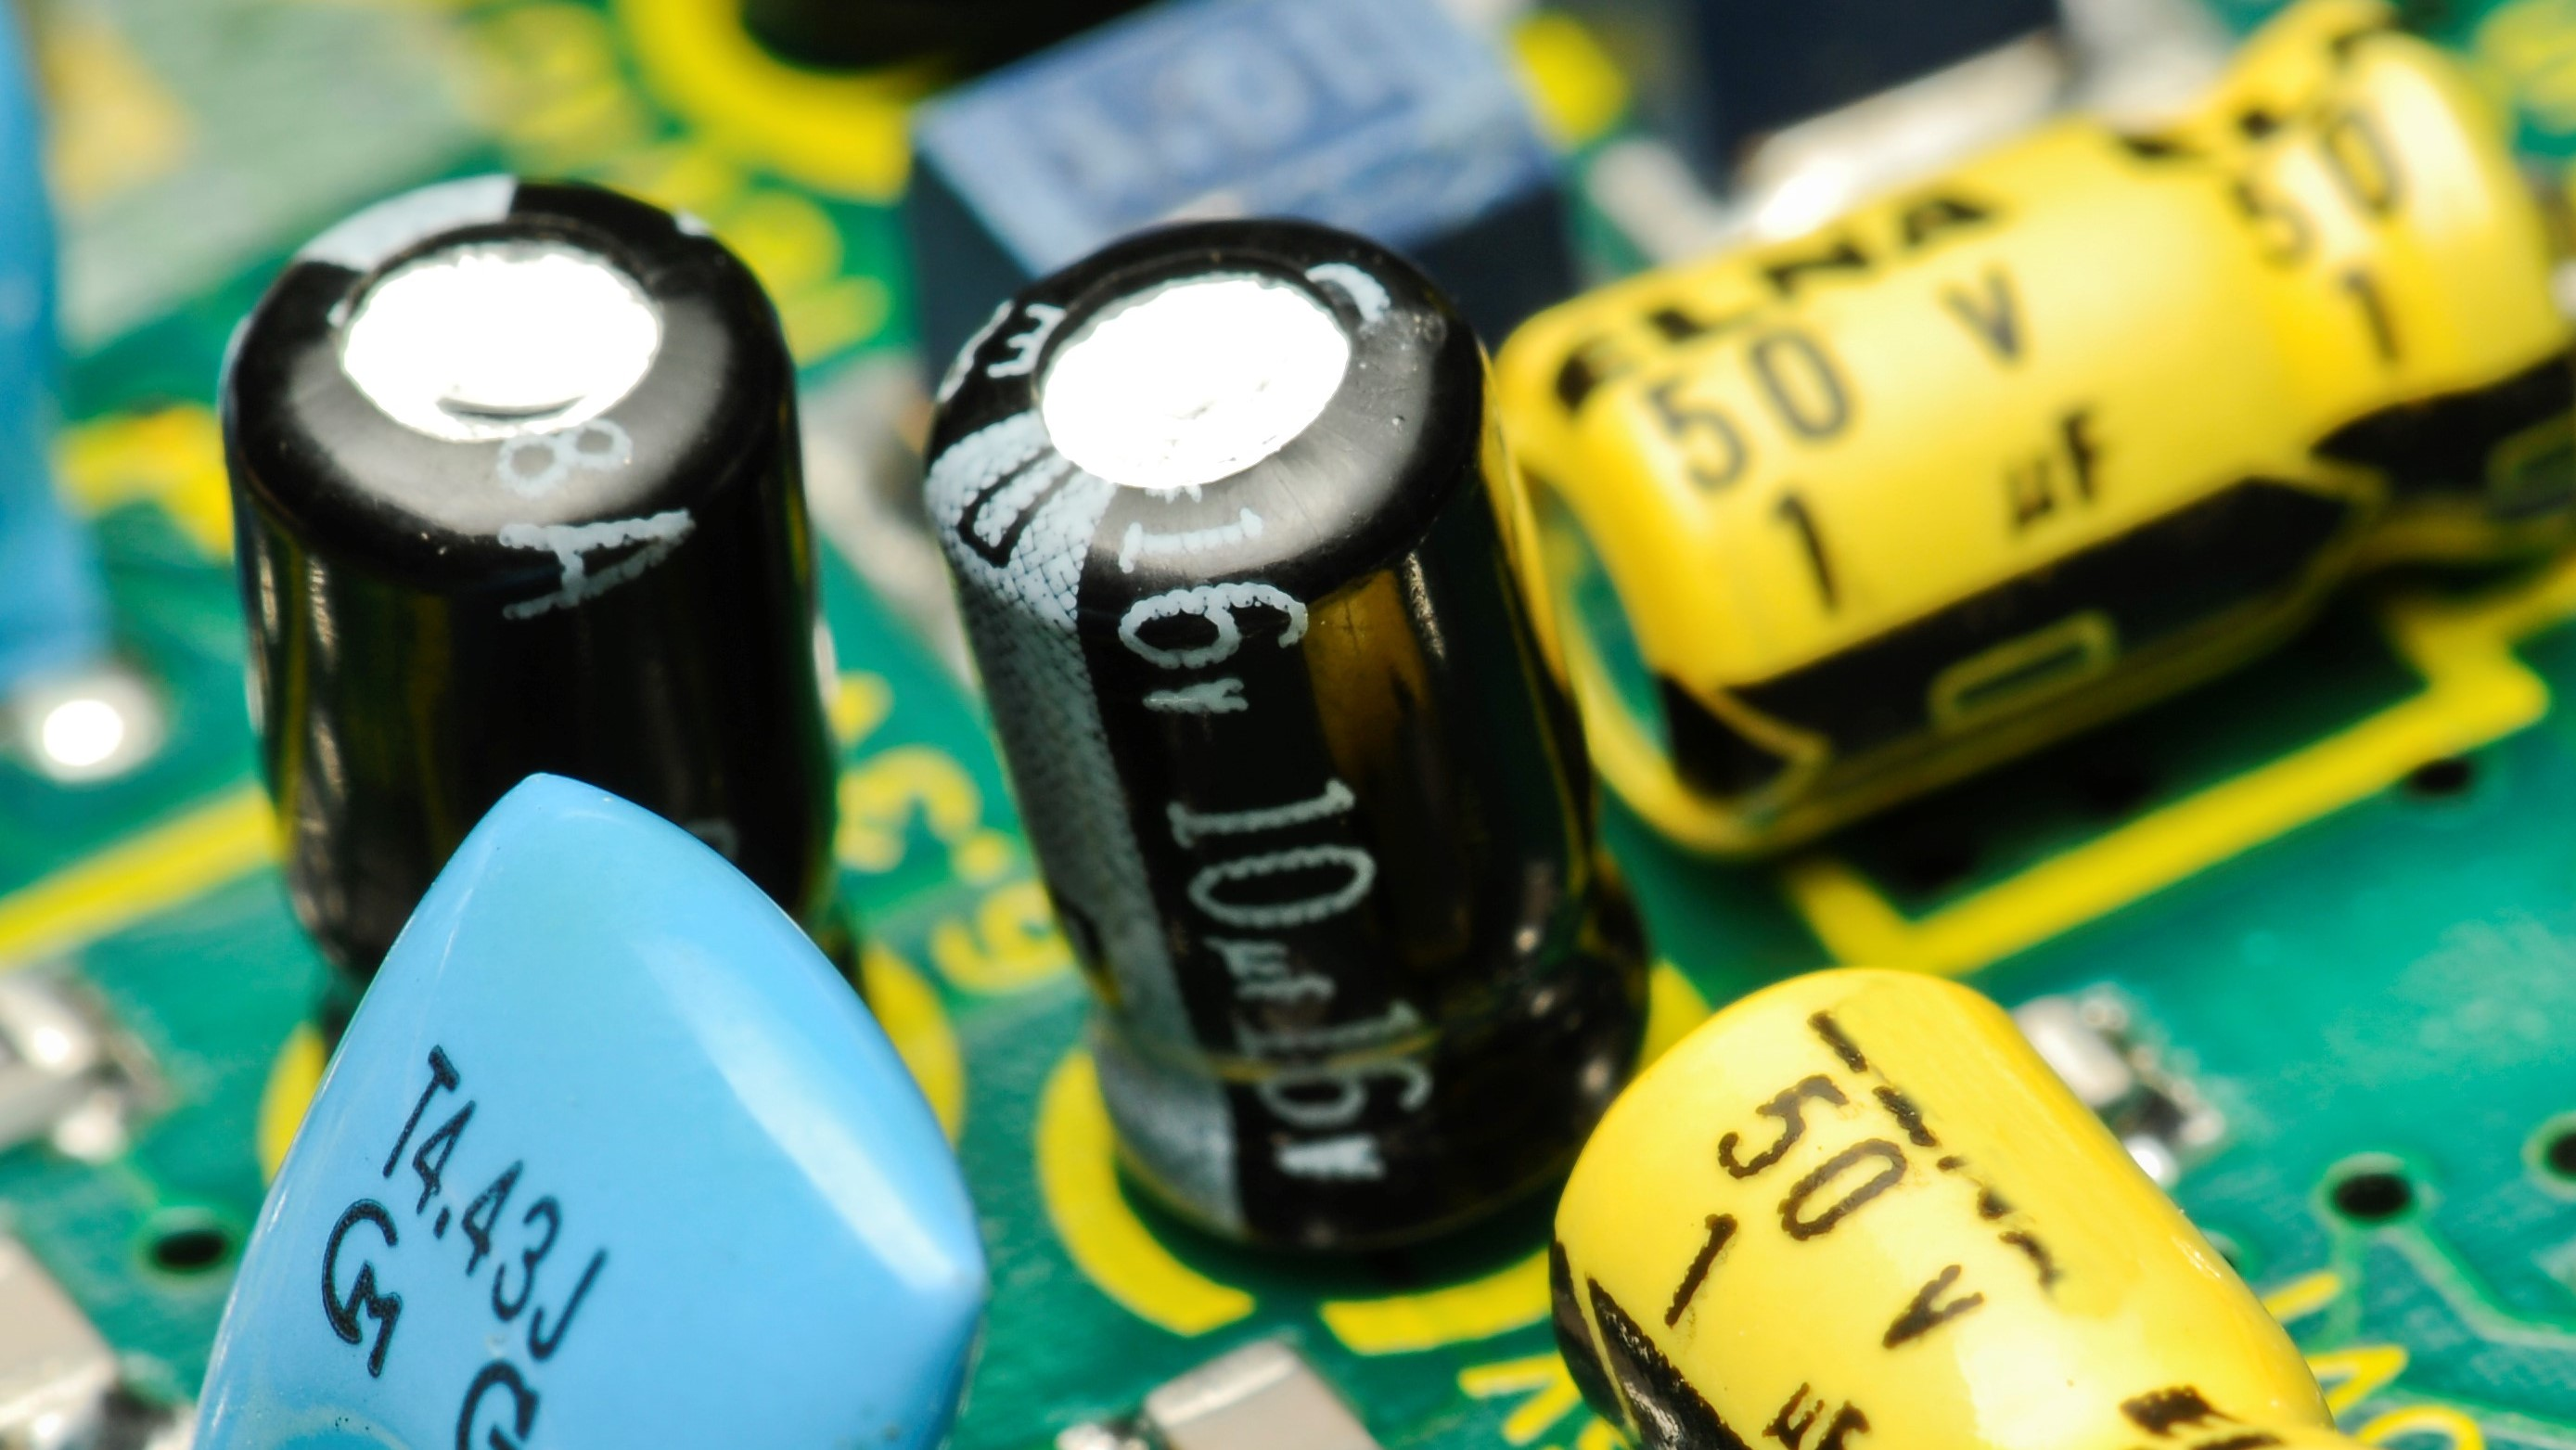 How Can Counterfeit Electronic Parts Be Spotted